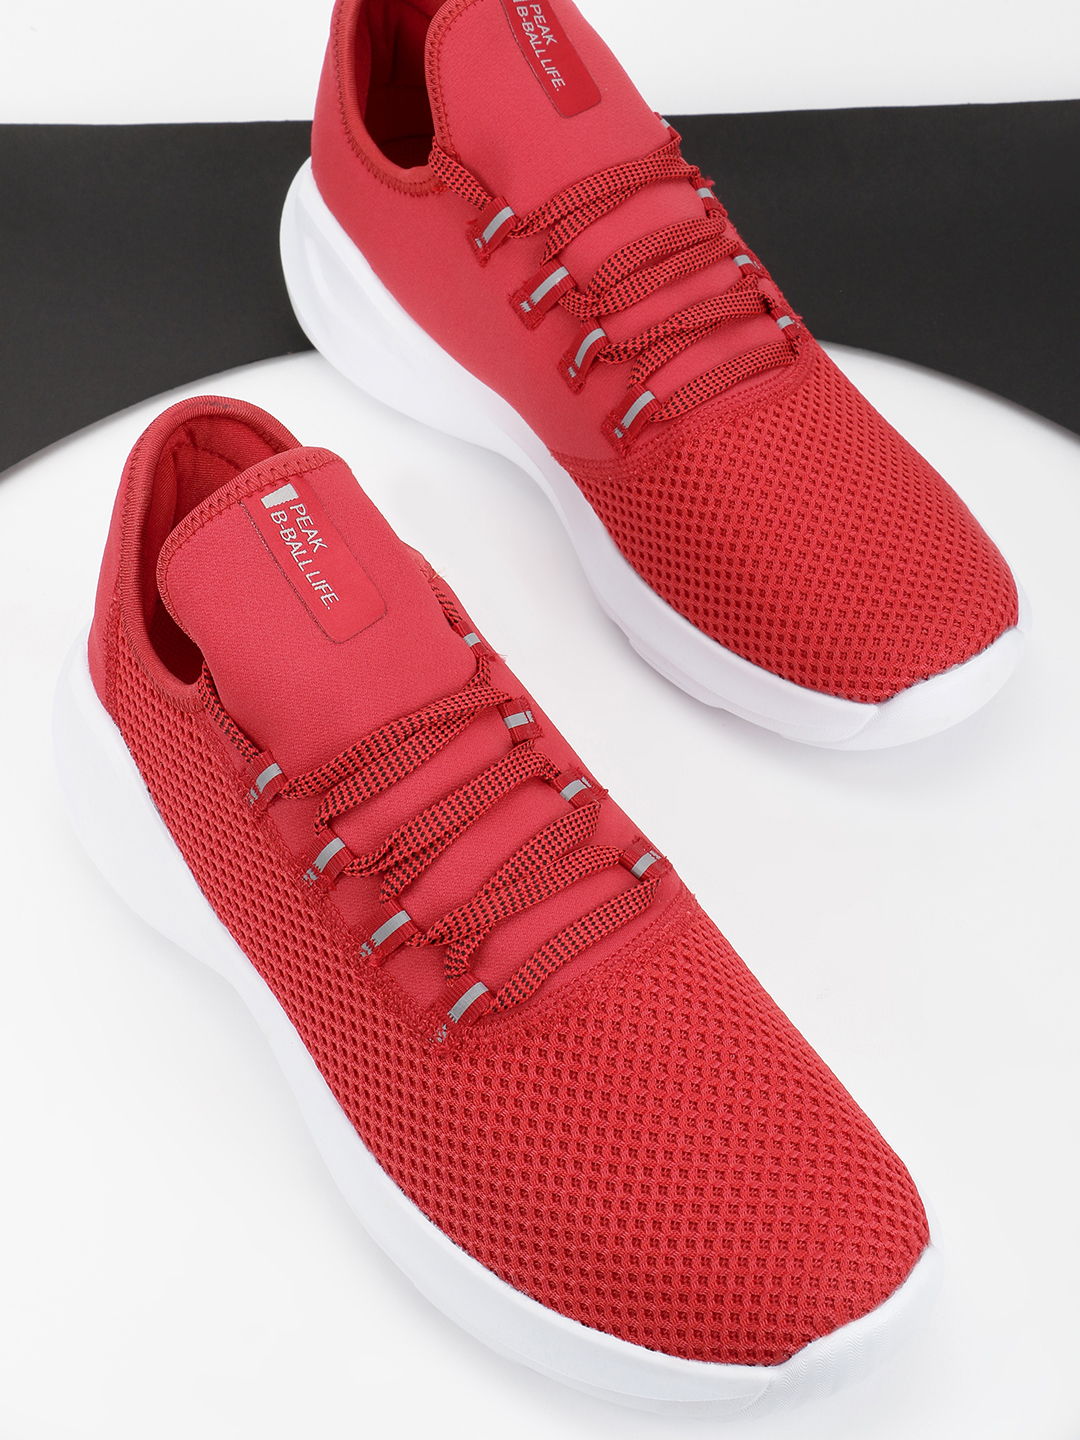 Peak Red Knitted Basketball Shoes 1